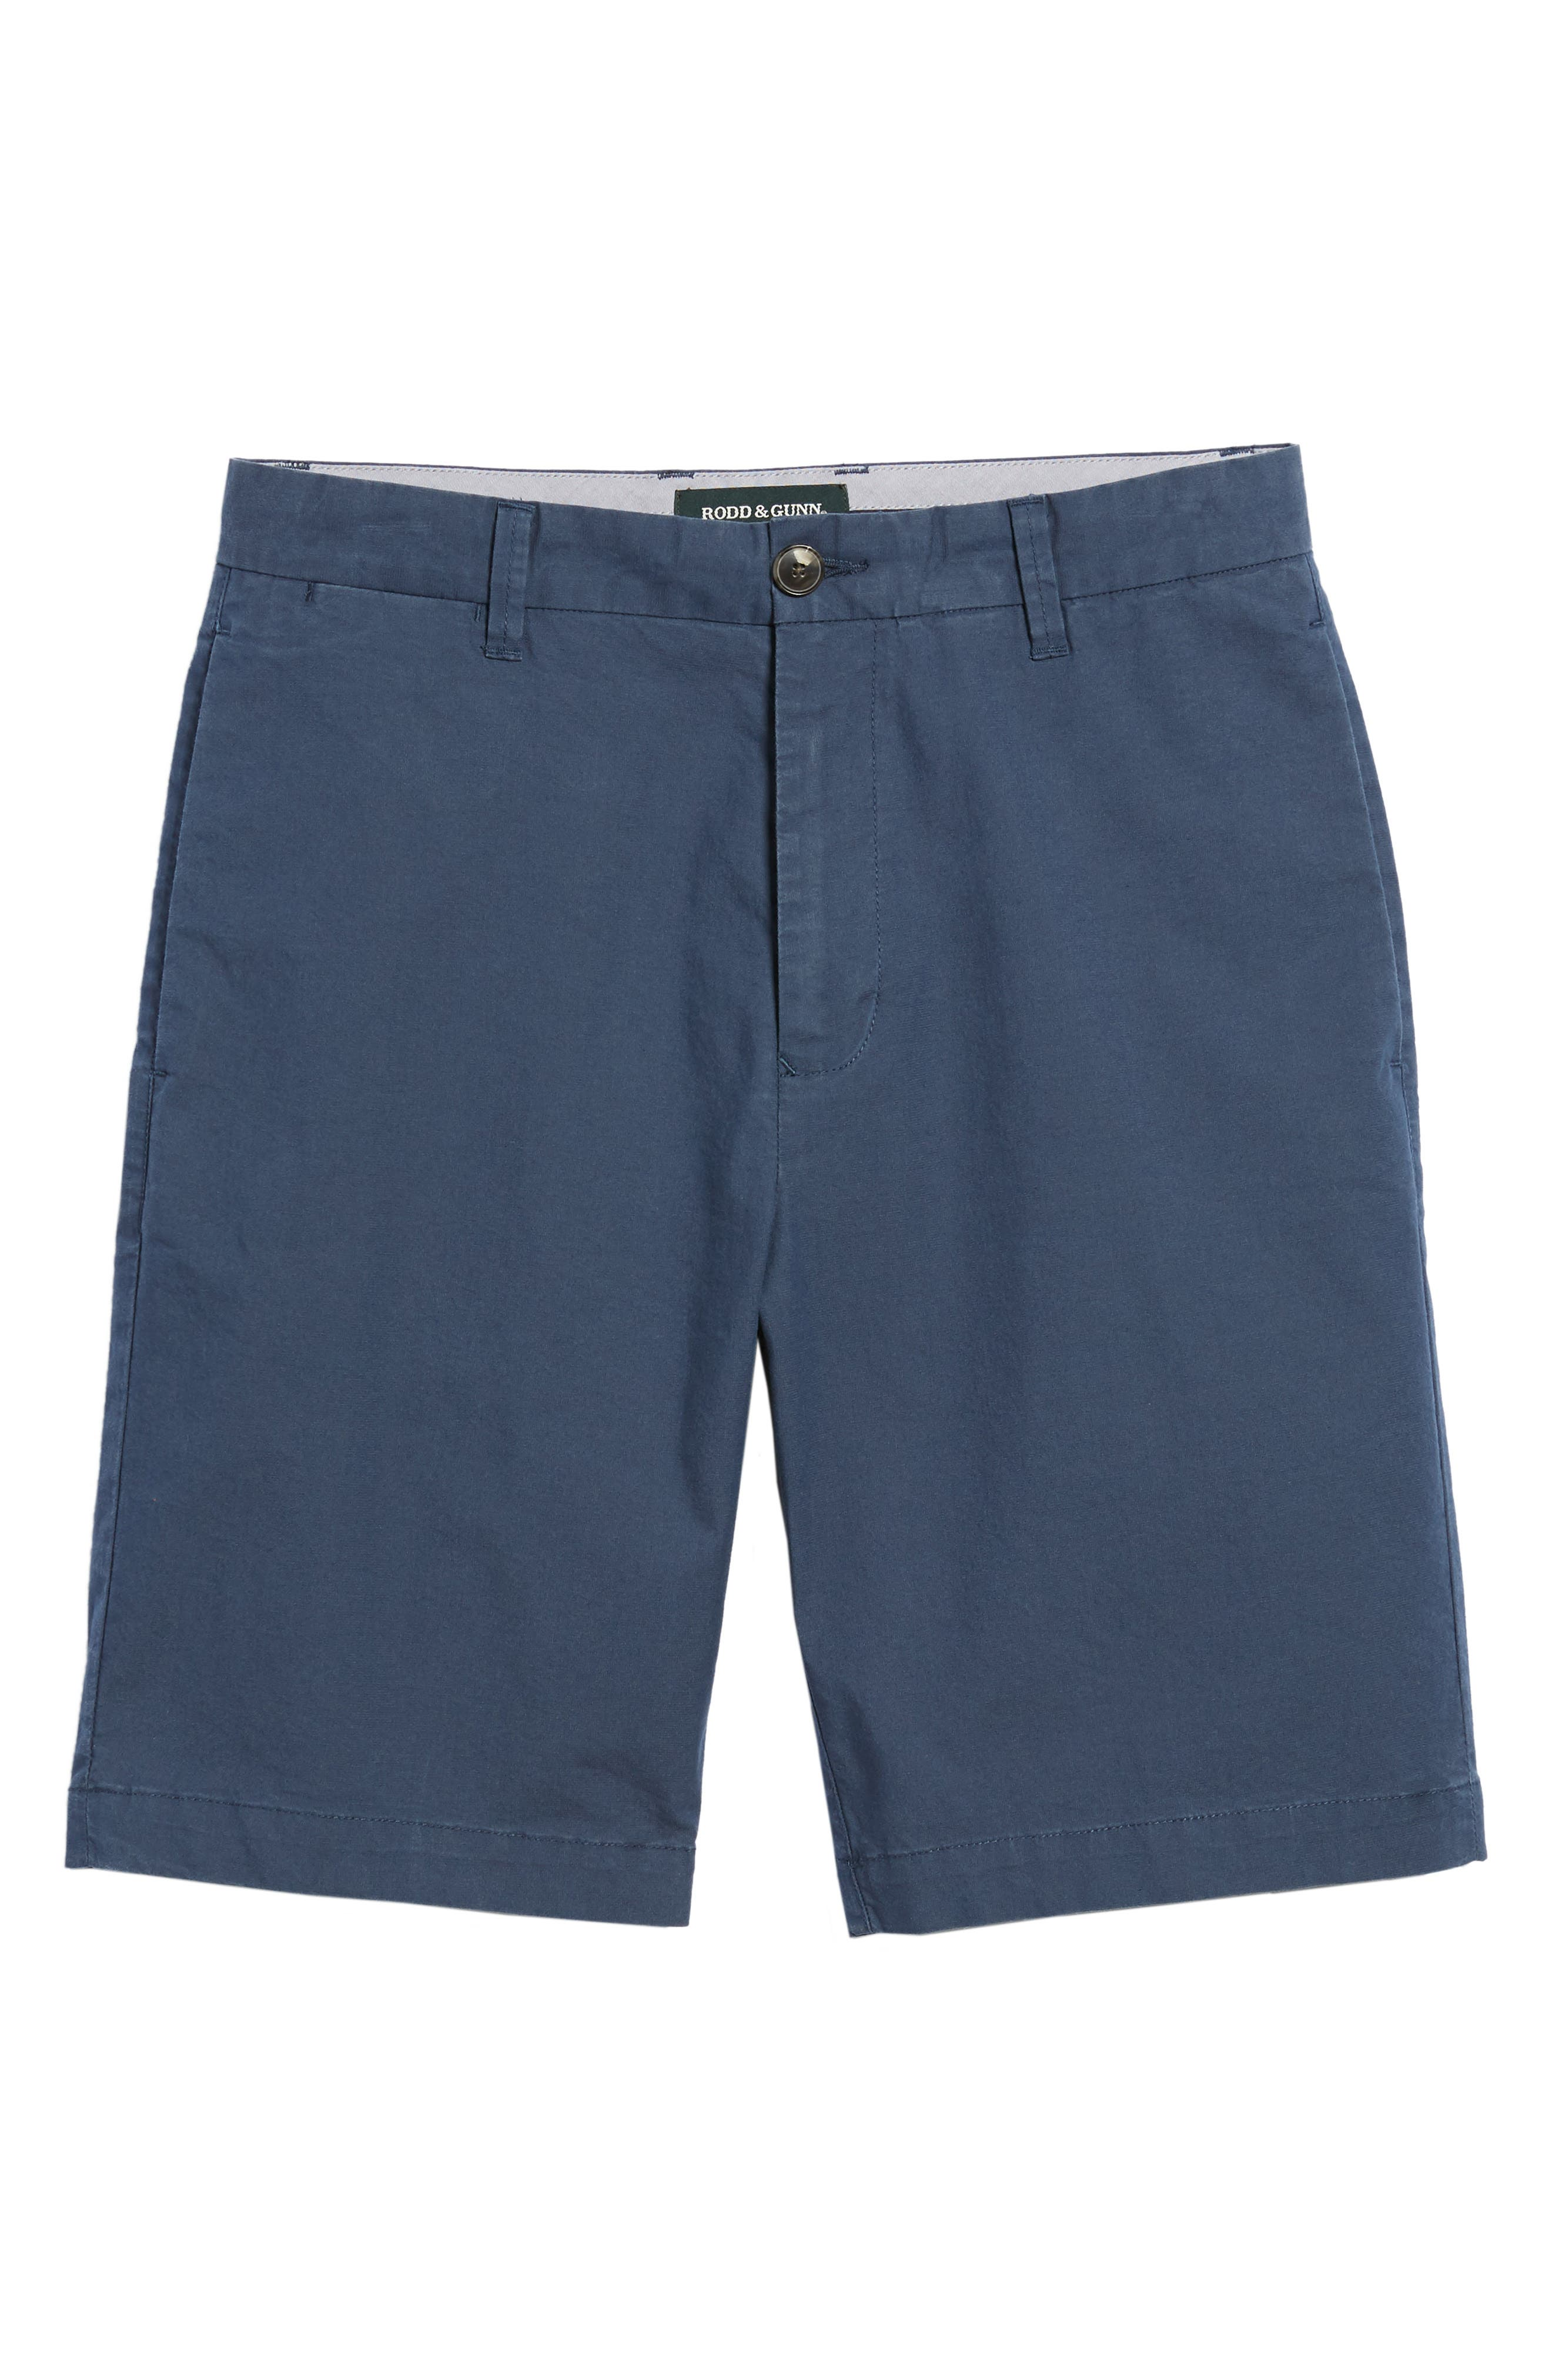 Broadway Regular Fit Chino Shorts,                             Alternate thumbnail 6, color,                             413